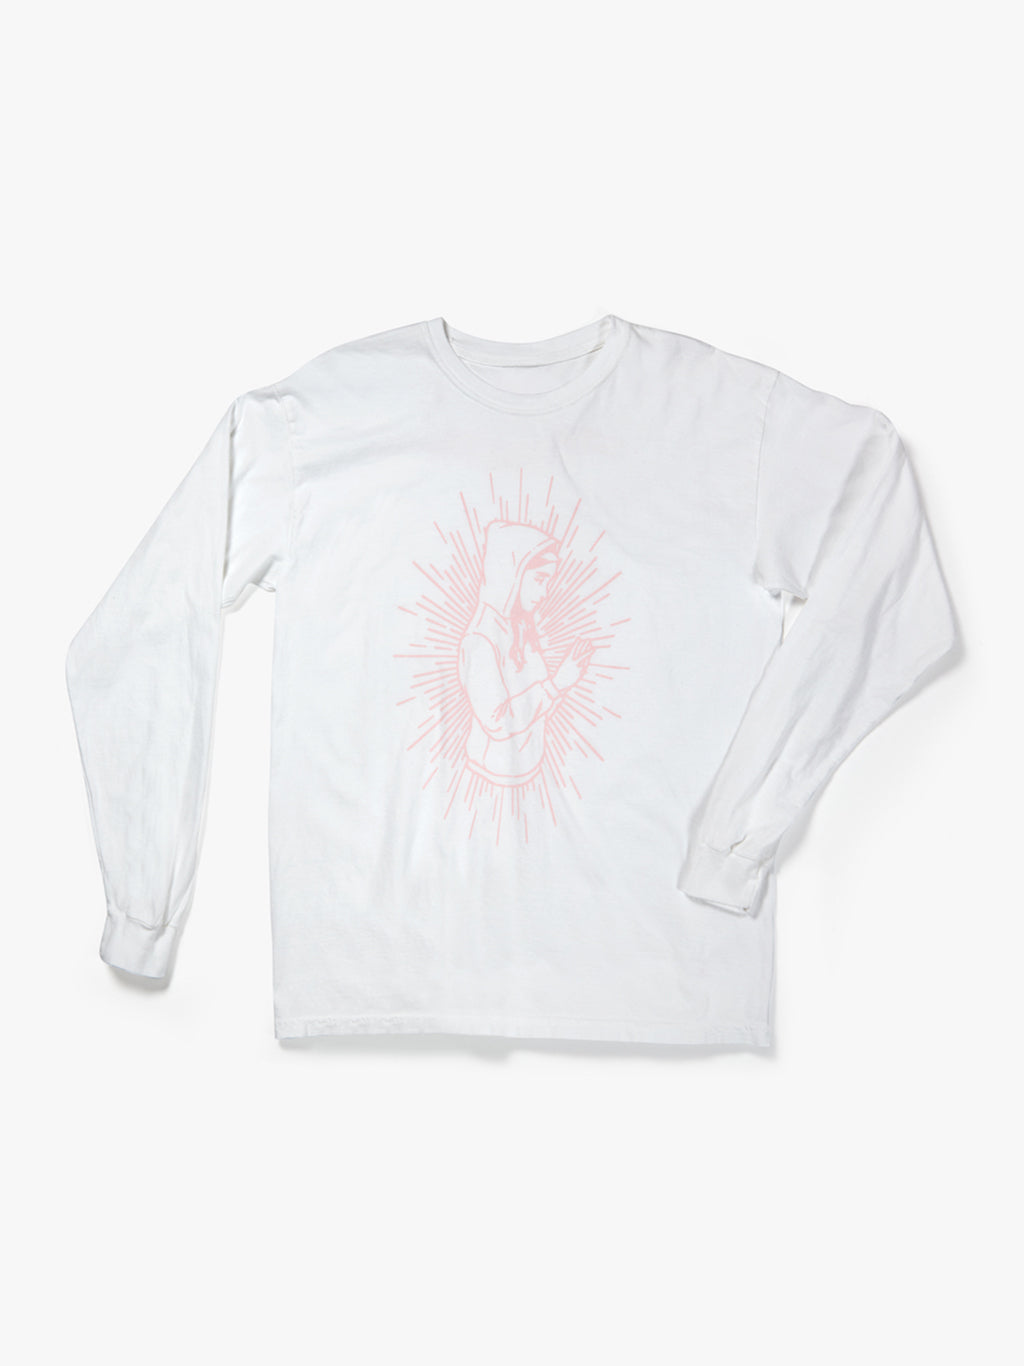 BAD BILLY SALE // White Long Sleeved Tee with Saint Billy!